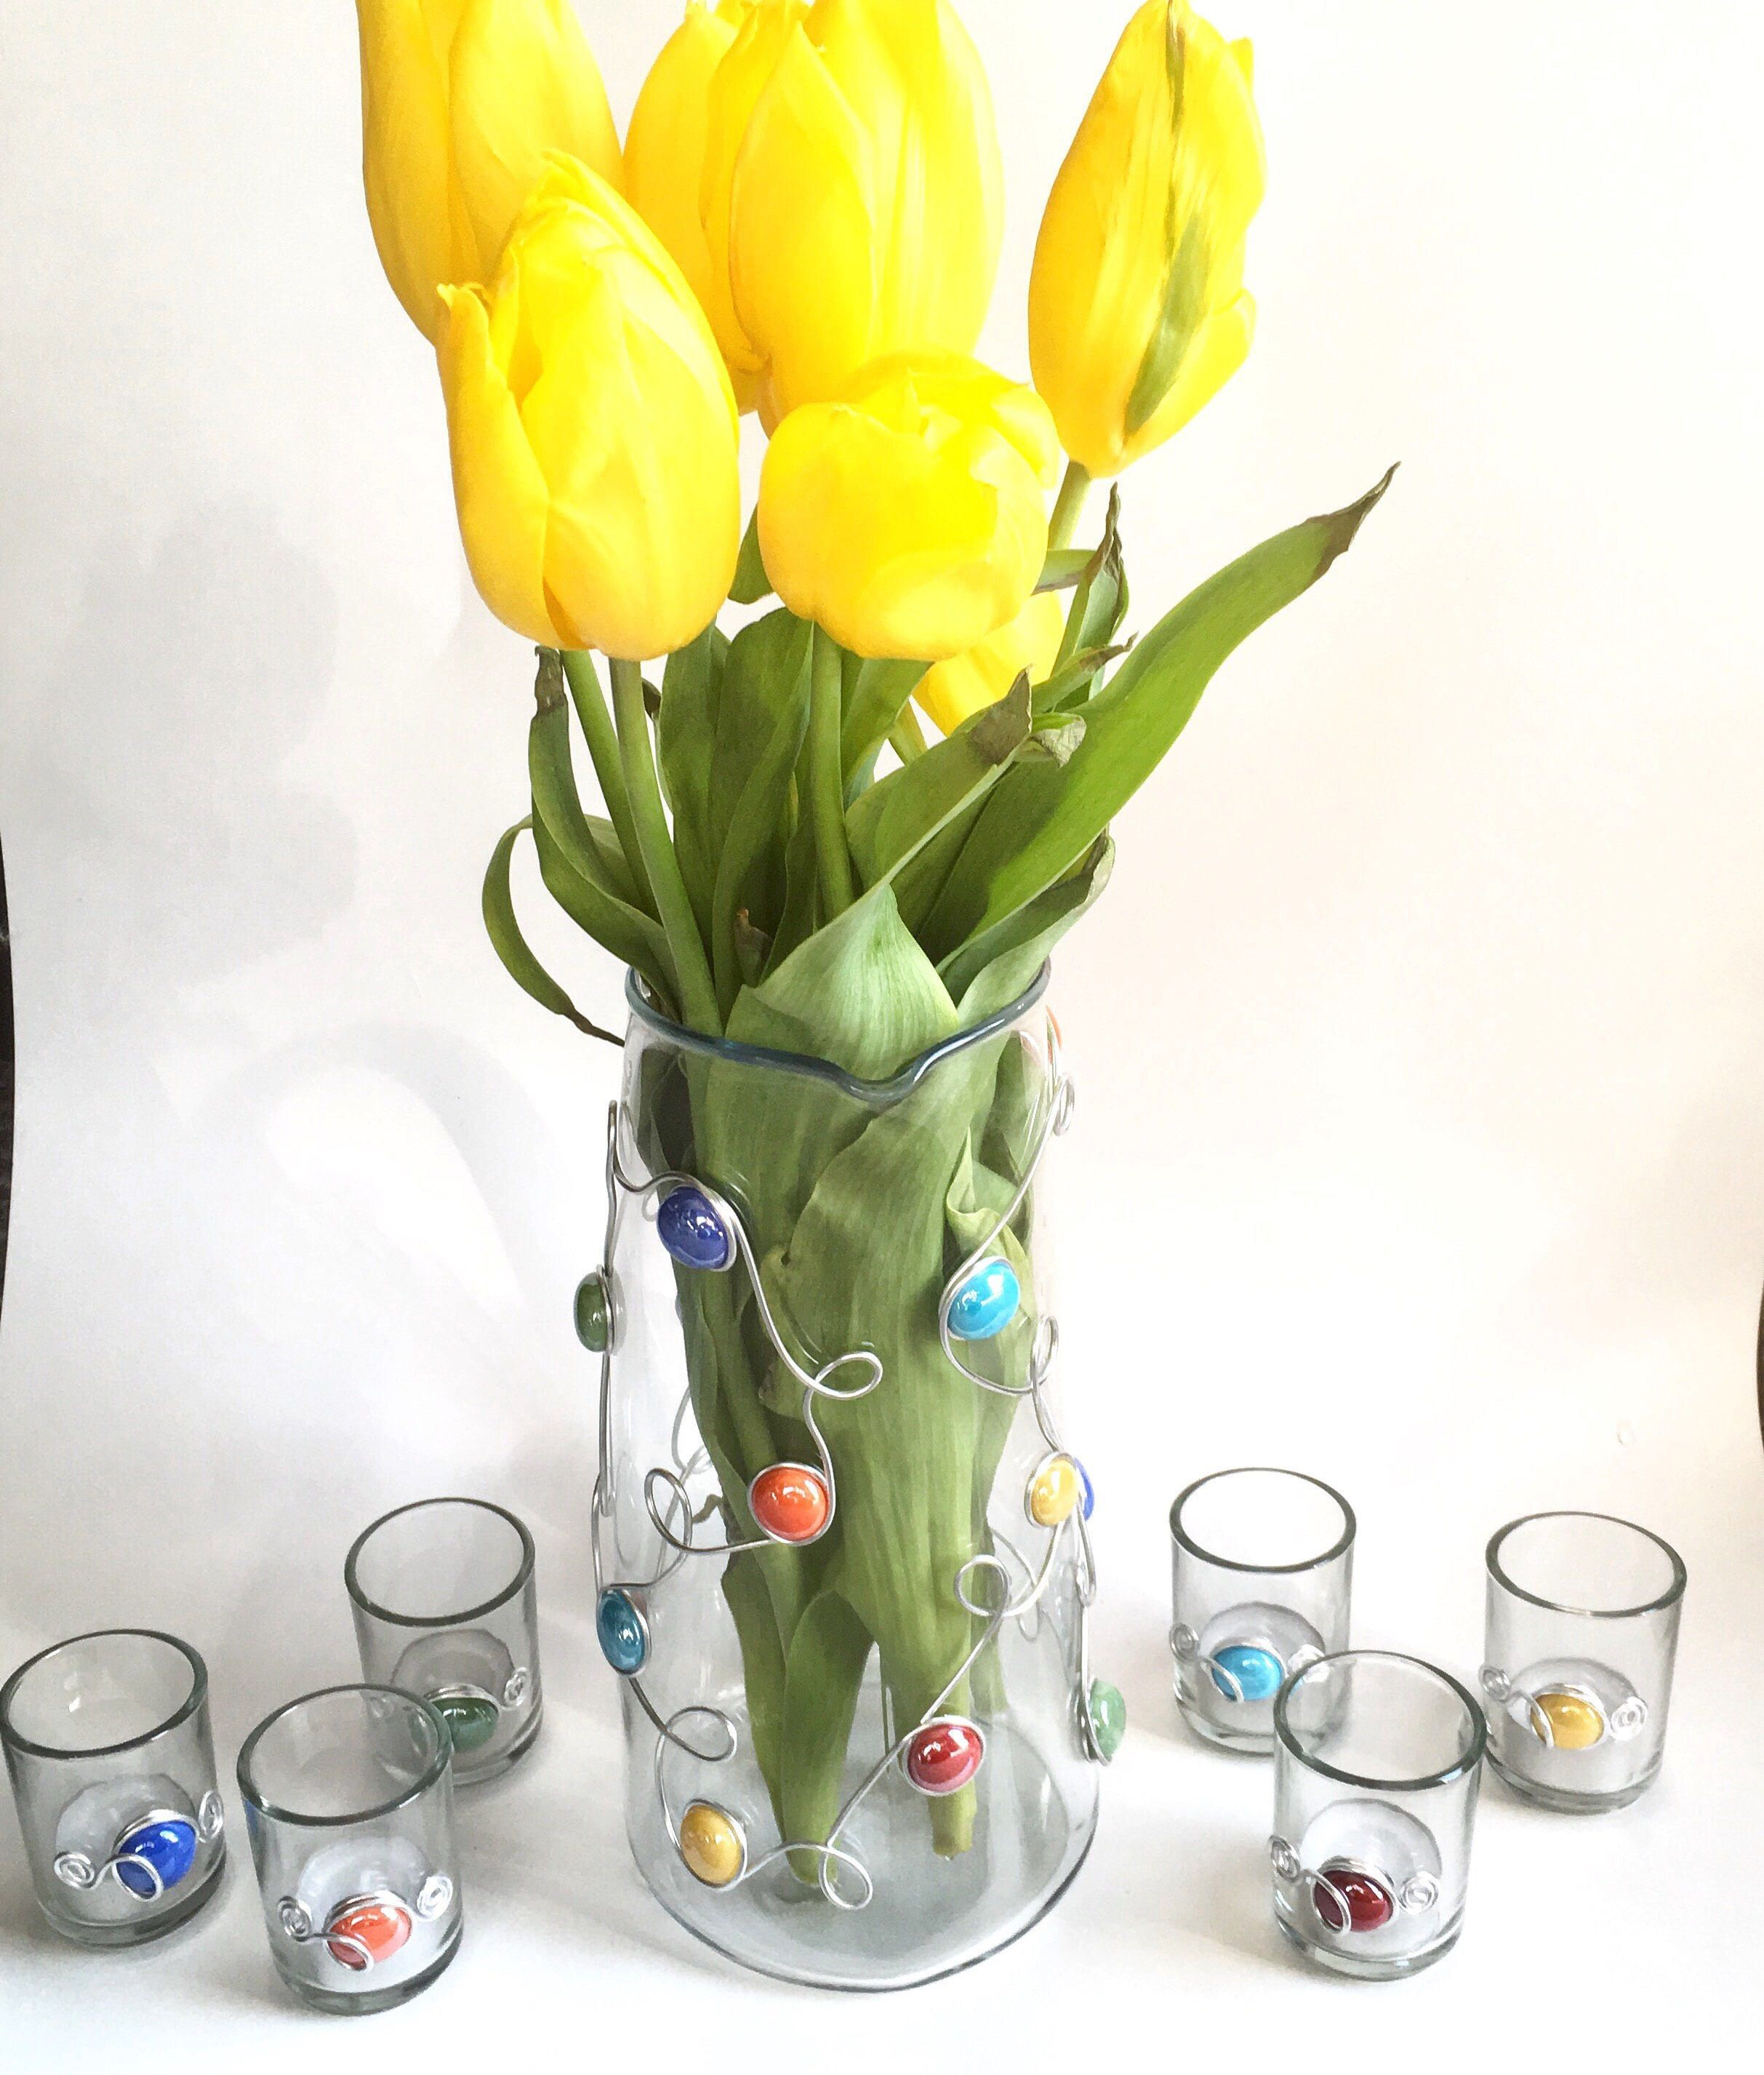 Dress up your event with this pitcher vase u candle holder set